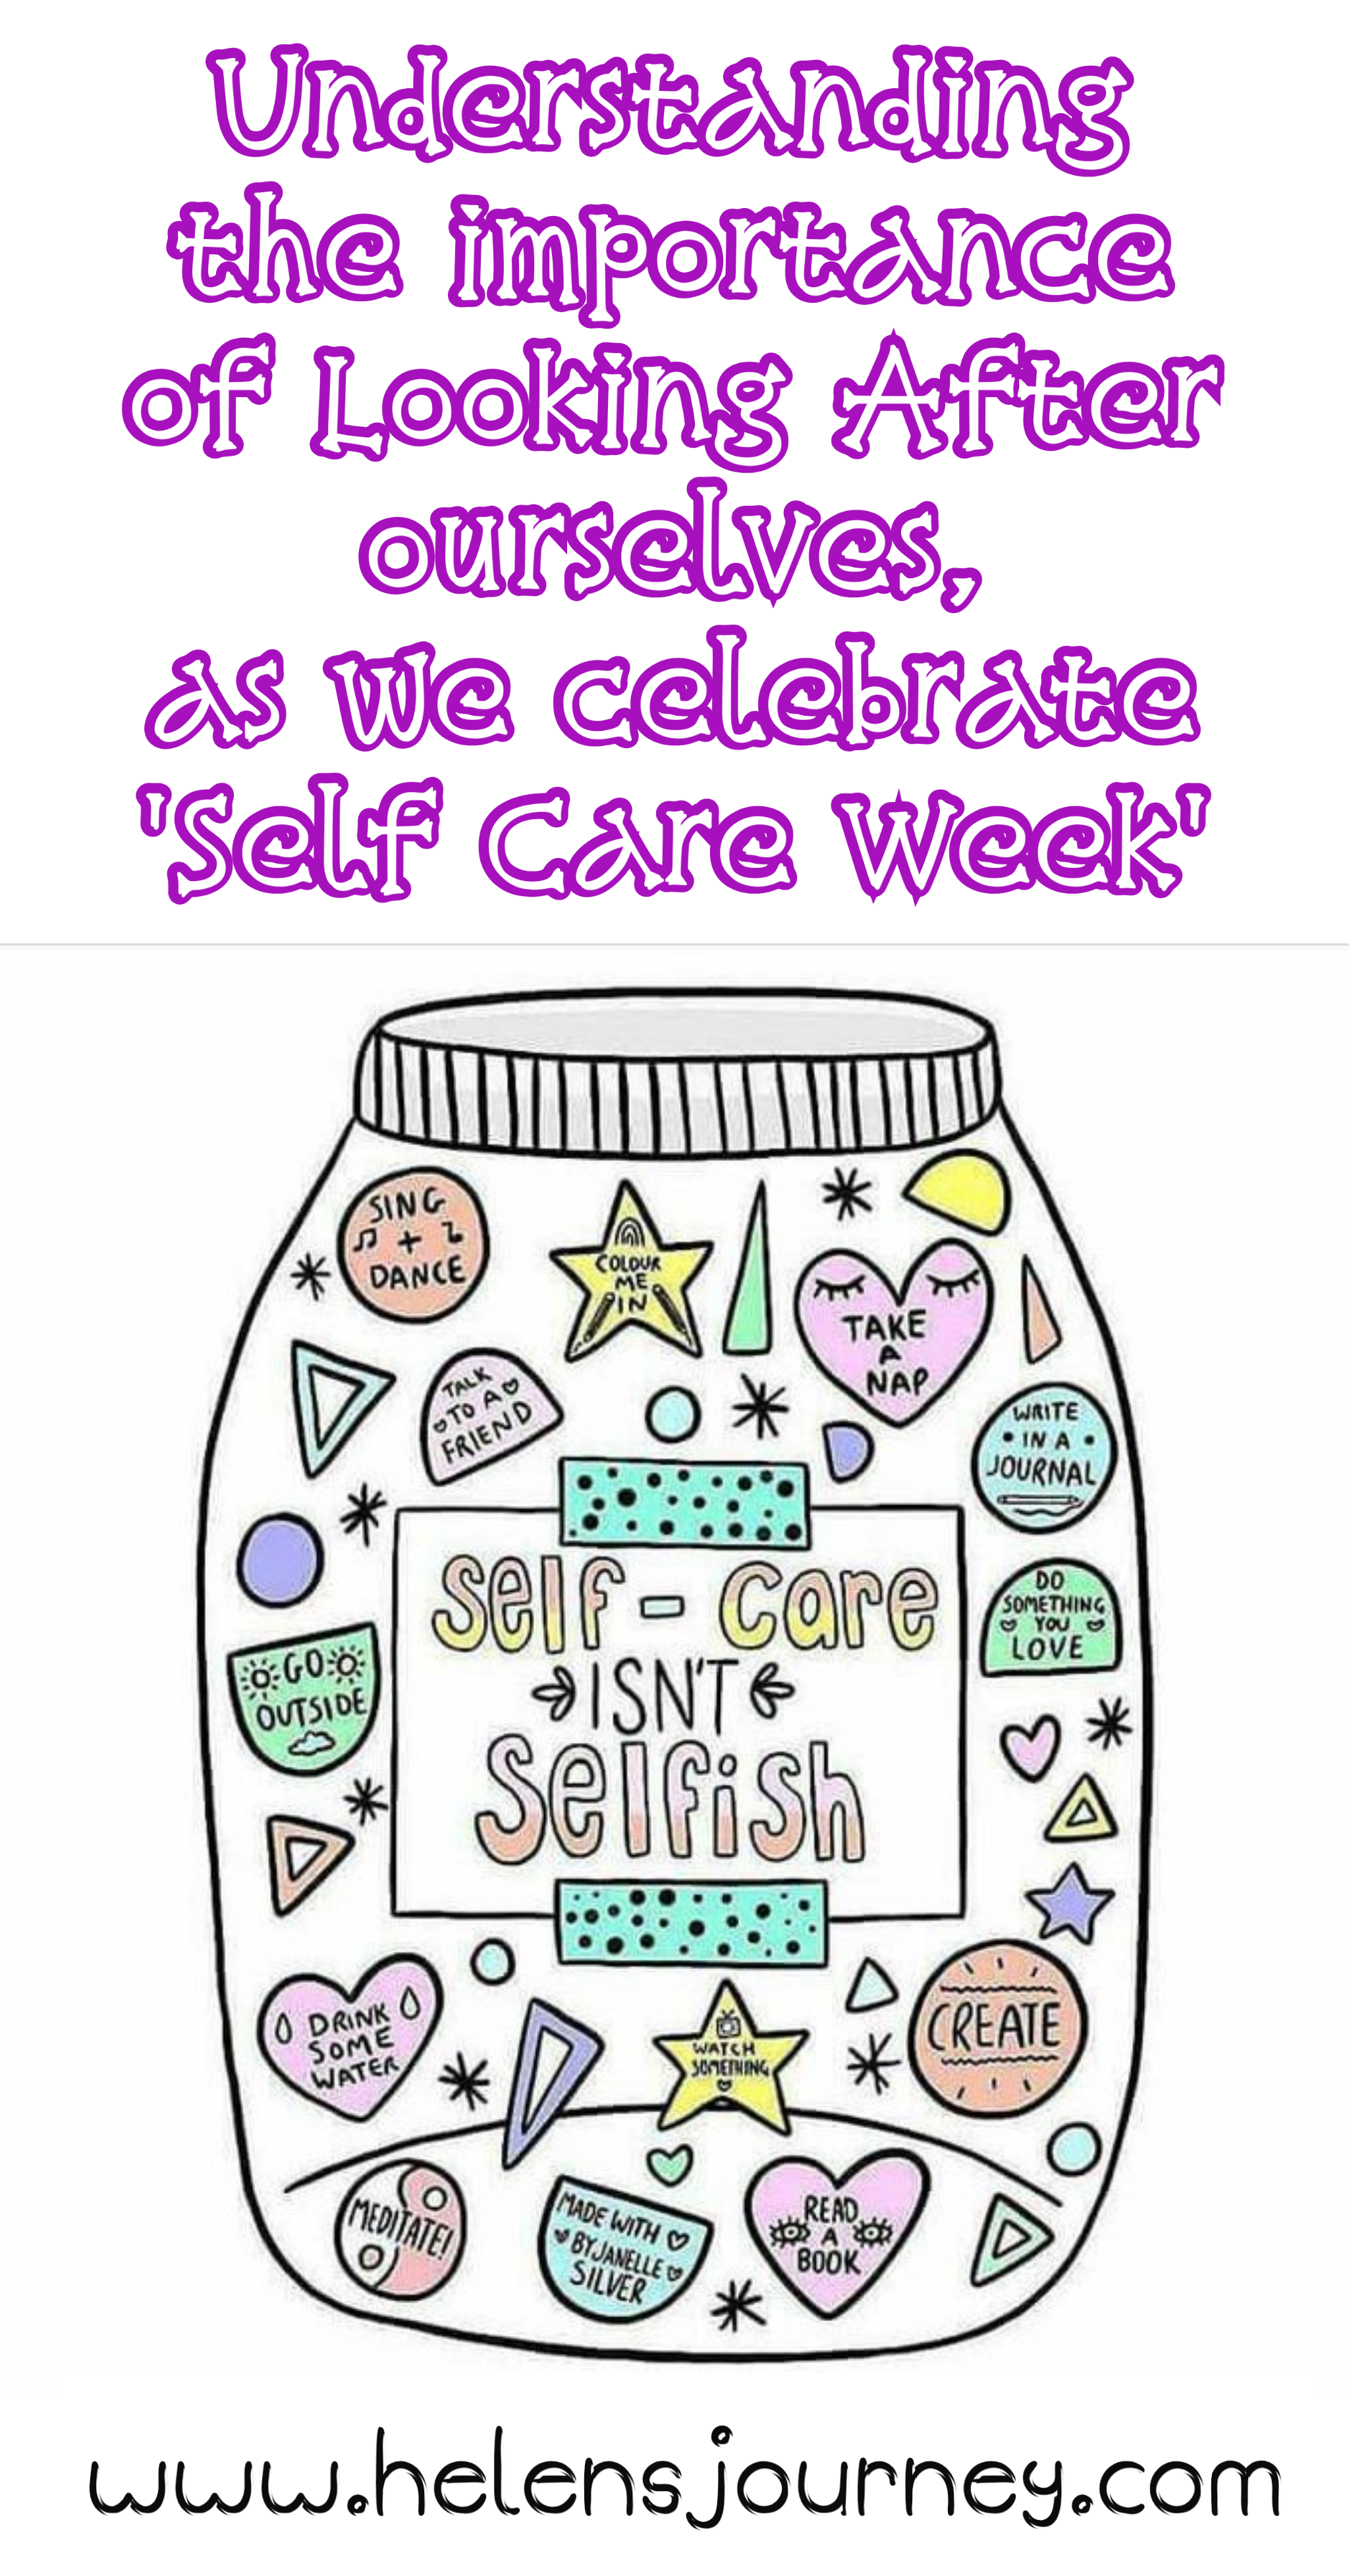 self-care isn't selfish. Understanding the importance of looking after yourself as we celebrate self-care week